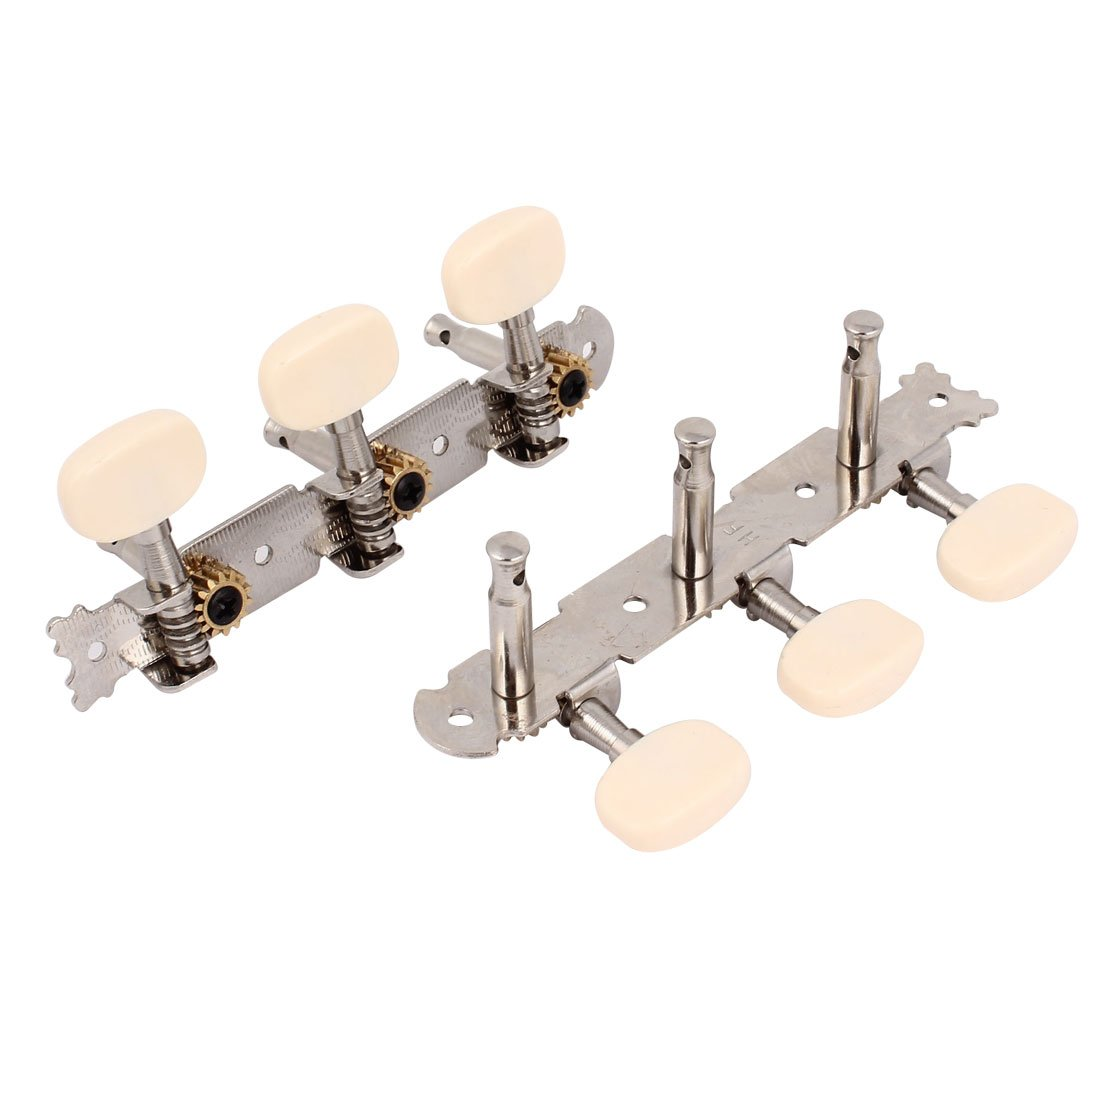 Machine Head Guitar Tuner Tuning Keys Pegs 2pcs Silver Tone Beige